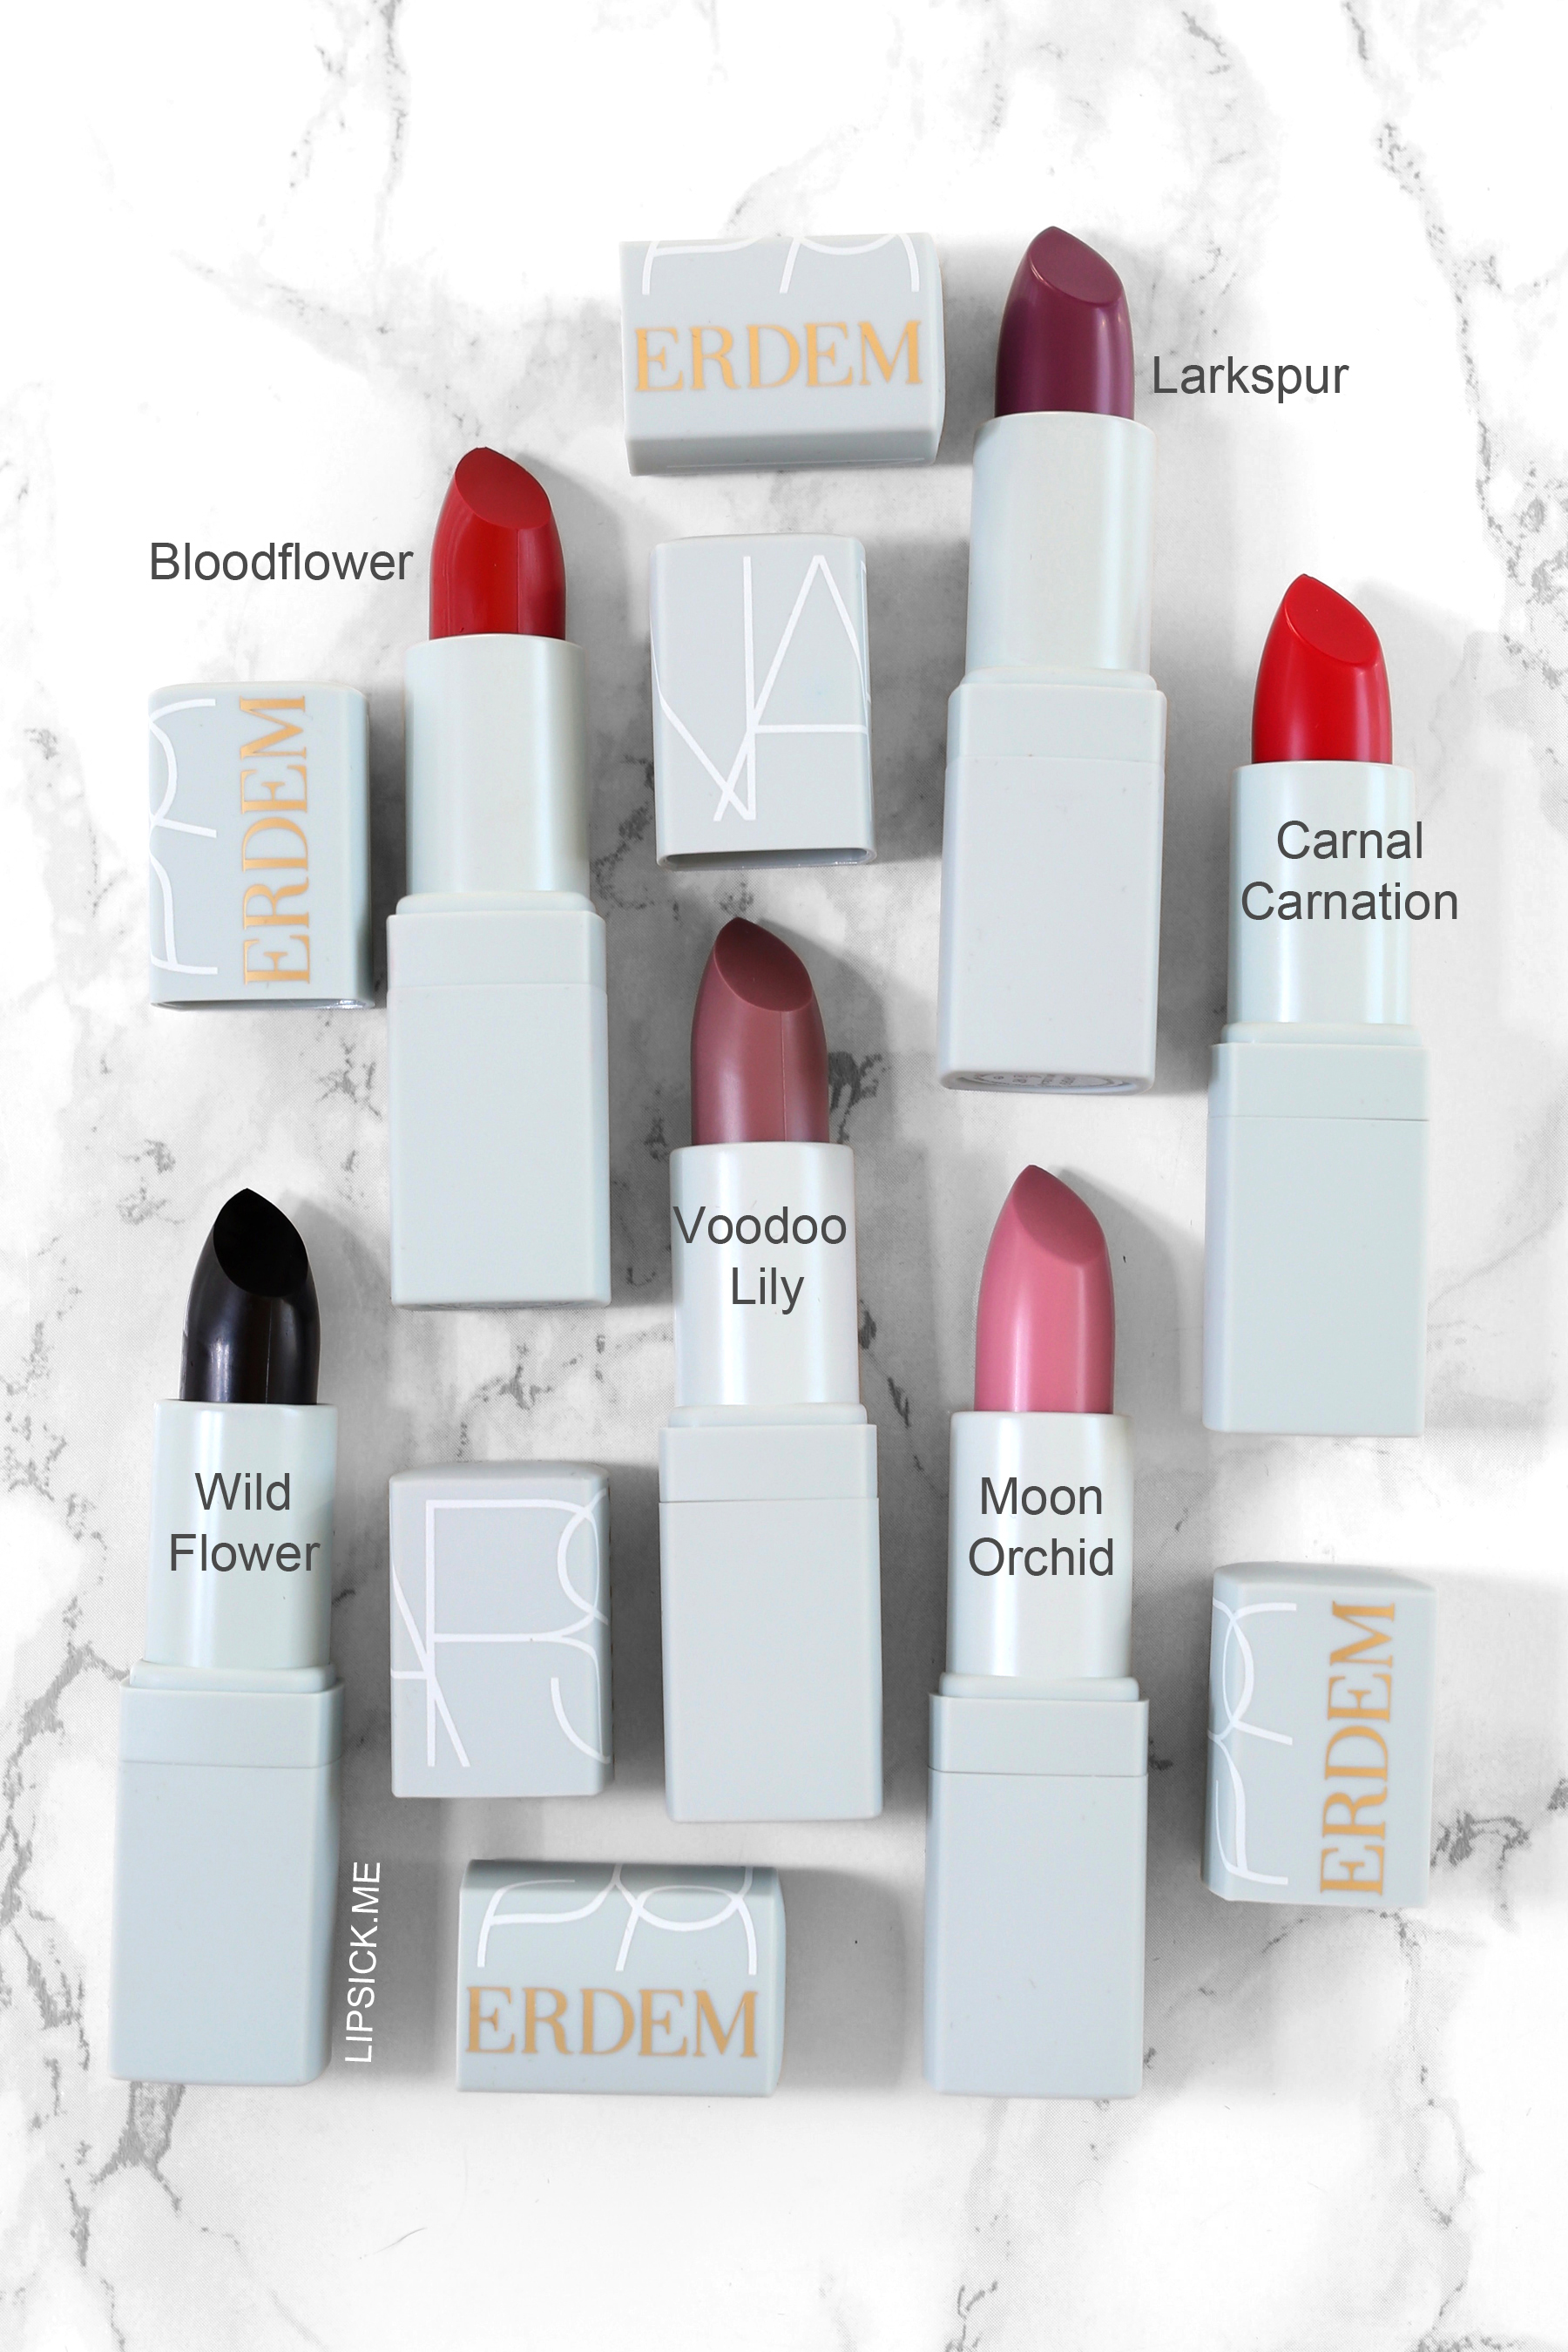 NARS x Erdem Full Lipstick Collection - Carnal Carnation, Bloodflower, Wild Flower, Moon Orchid, Larkspur, Voodoo Lily - copy.jpg